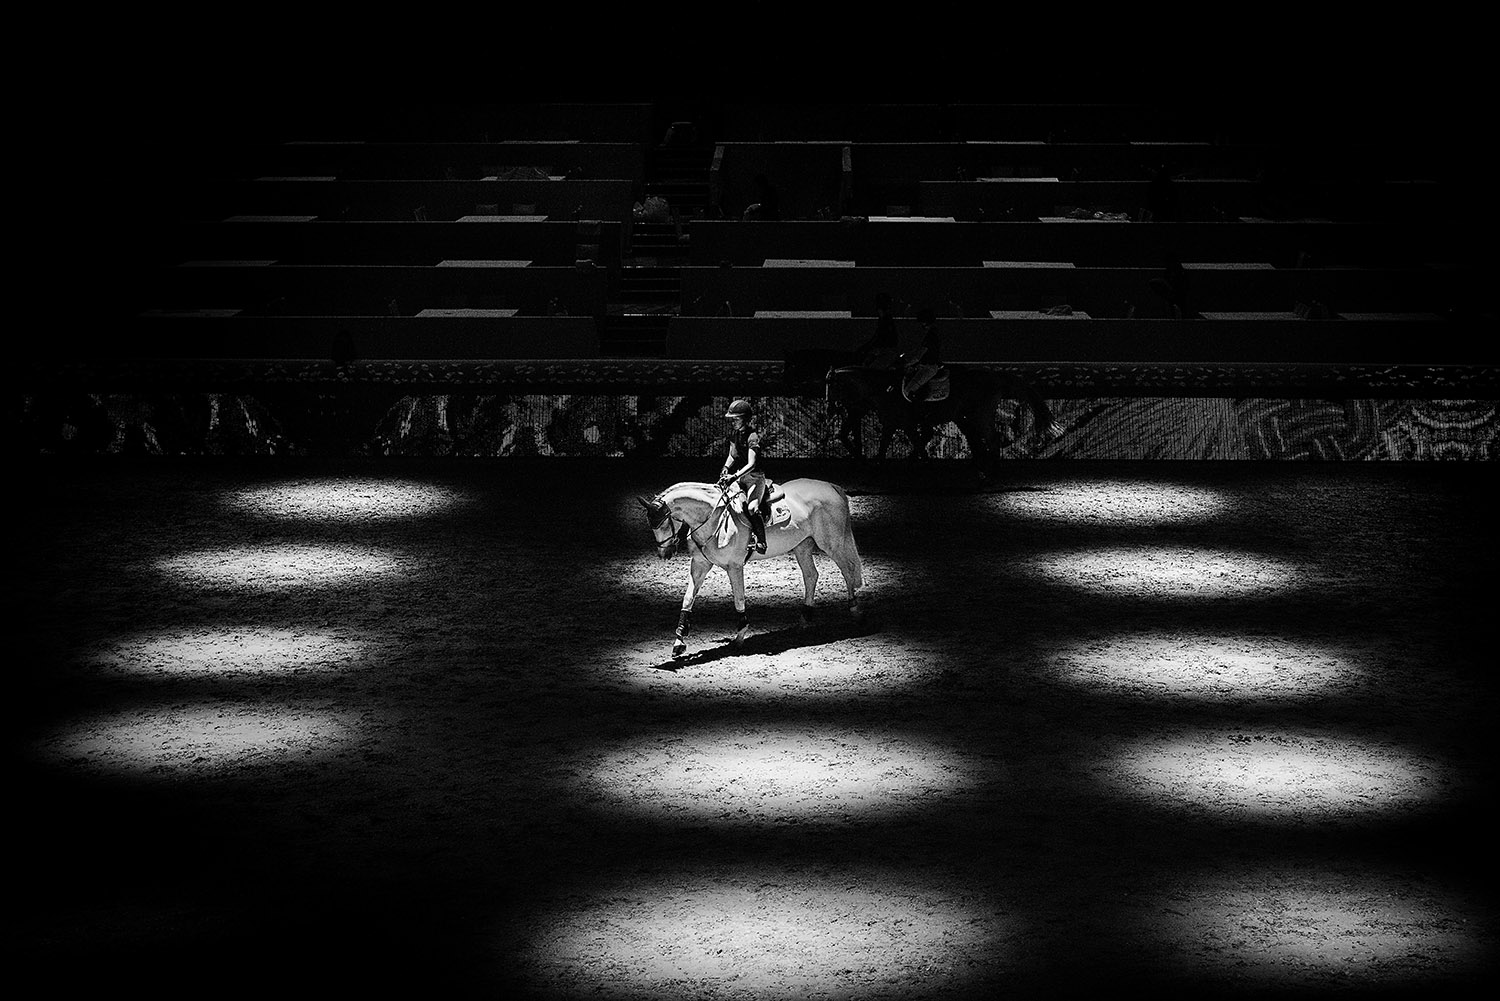 LOS ANGELES, CA - SEPTEMBER 24: Upon arrival to the competition, a rider warms up her horse in the ring and tries to acclimate the horse to its surroundings -- most notably the ad-filled LED perimeter screen, which can prove distracting. {quote}The LED doesn't move ... it might scare the horses,{quote} says event director Matthieu Gheysen. {quote}We do not move the ads for the 75 seconds when the rider is actually jumping.{quote}(Photo by Benjamin Lowy/Reportage by Getty Images)